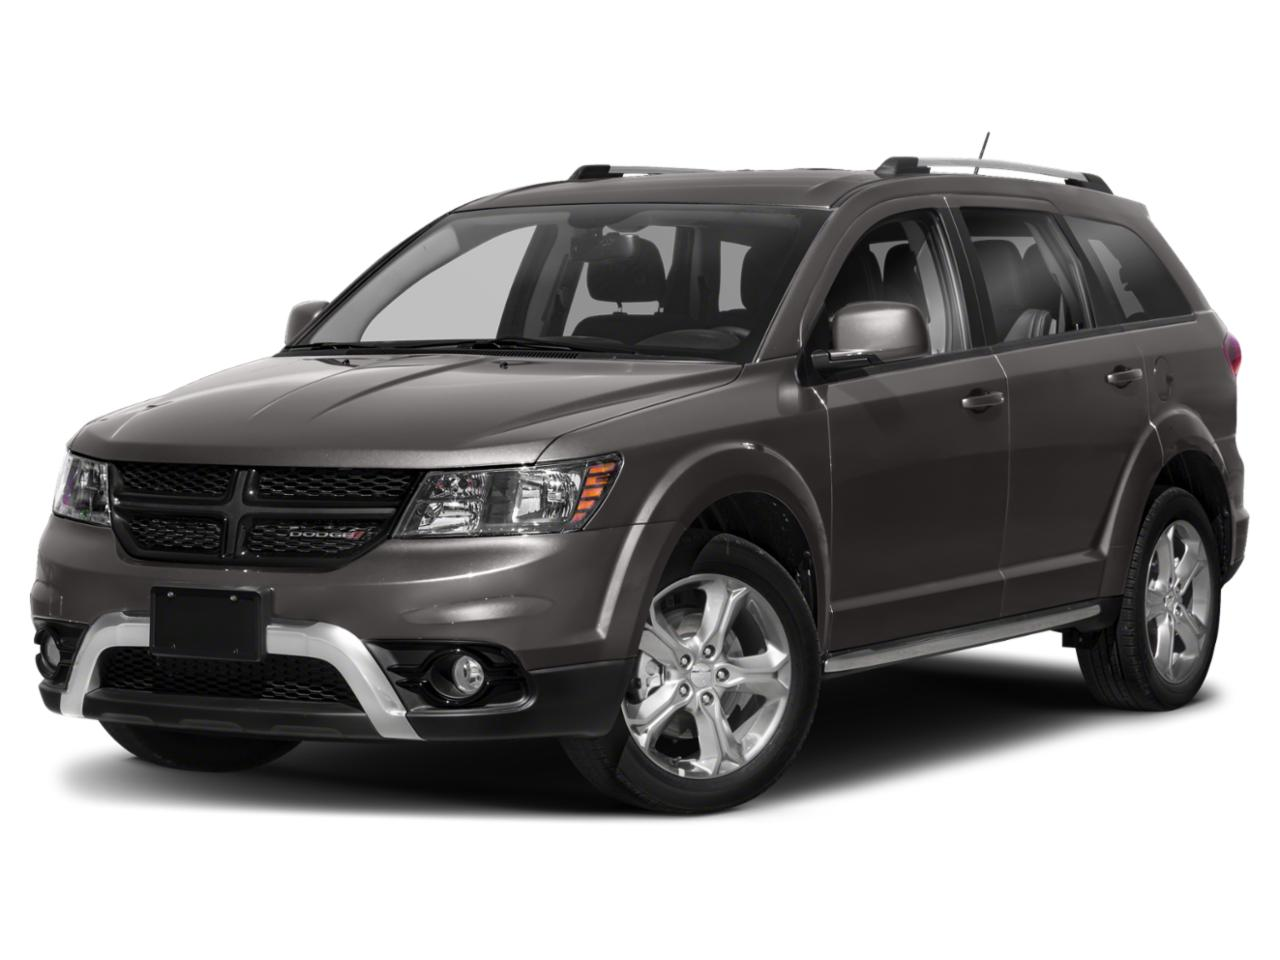 2019 Dodge Journey Vehicle Photo in Killeen, TX 76541